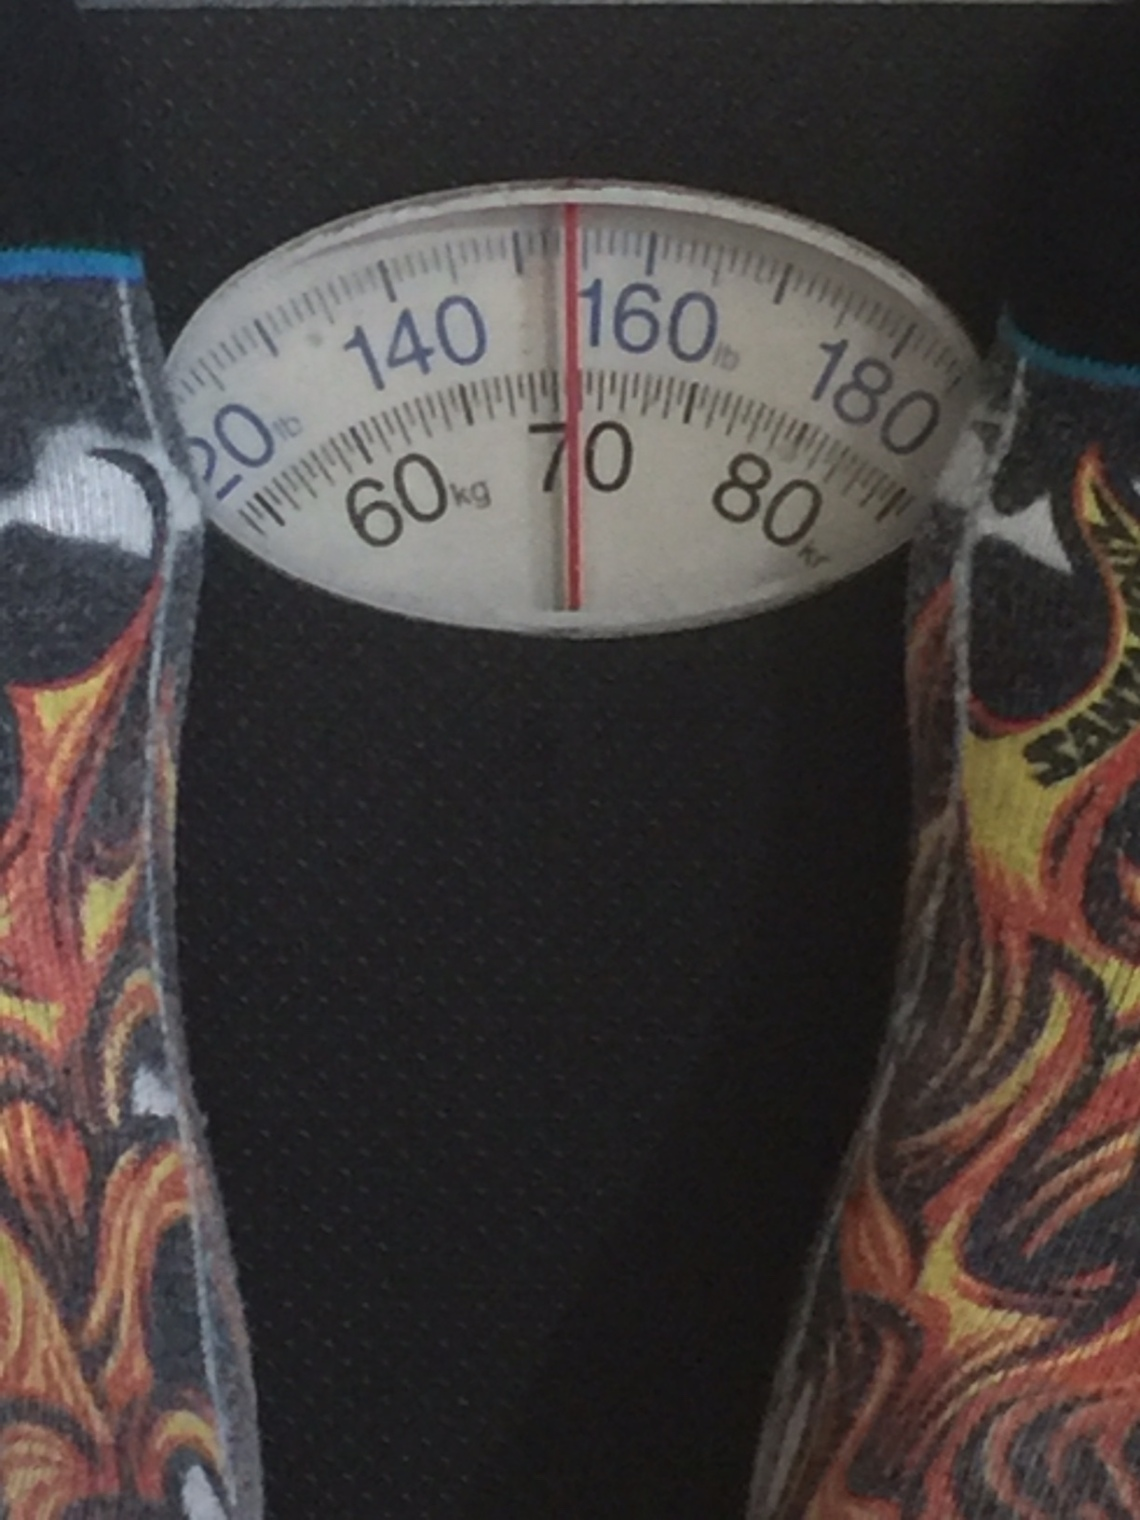 30-september-2016-weight-154-2